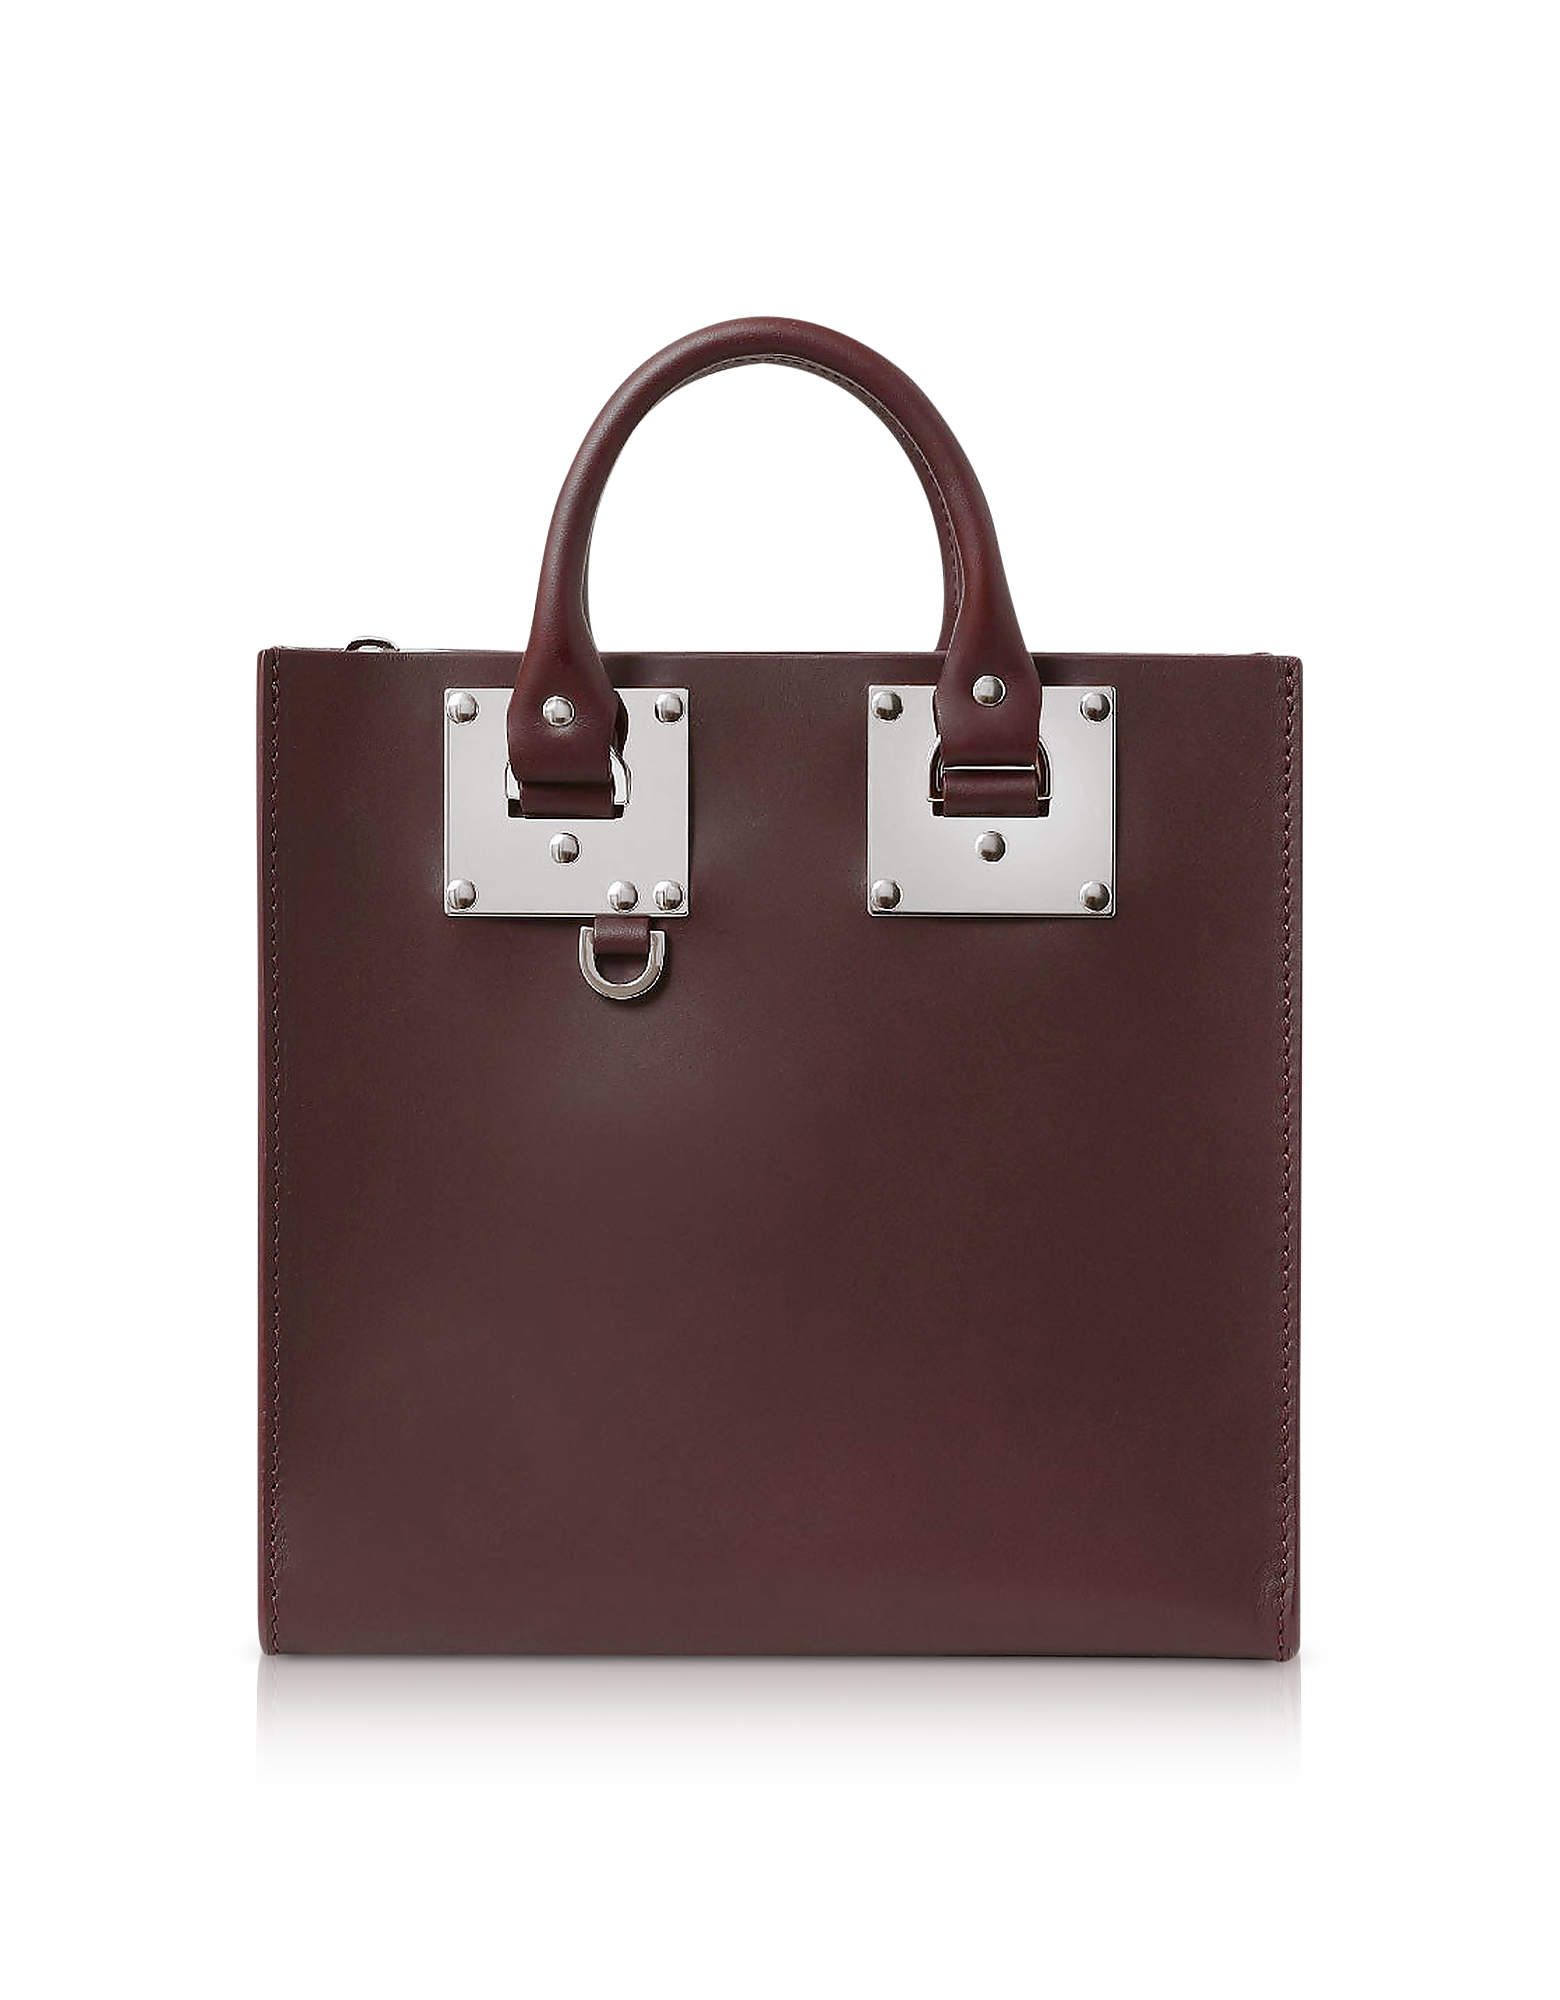 Image of Sophie Hulme Designer Handbags, Oxblood Saddle Leather Square Albion Tote